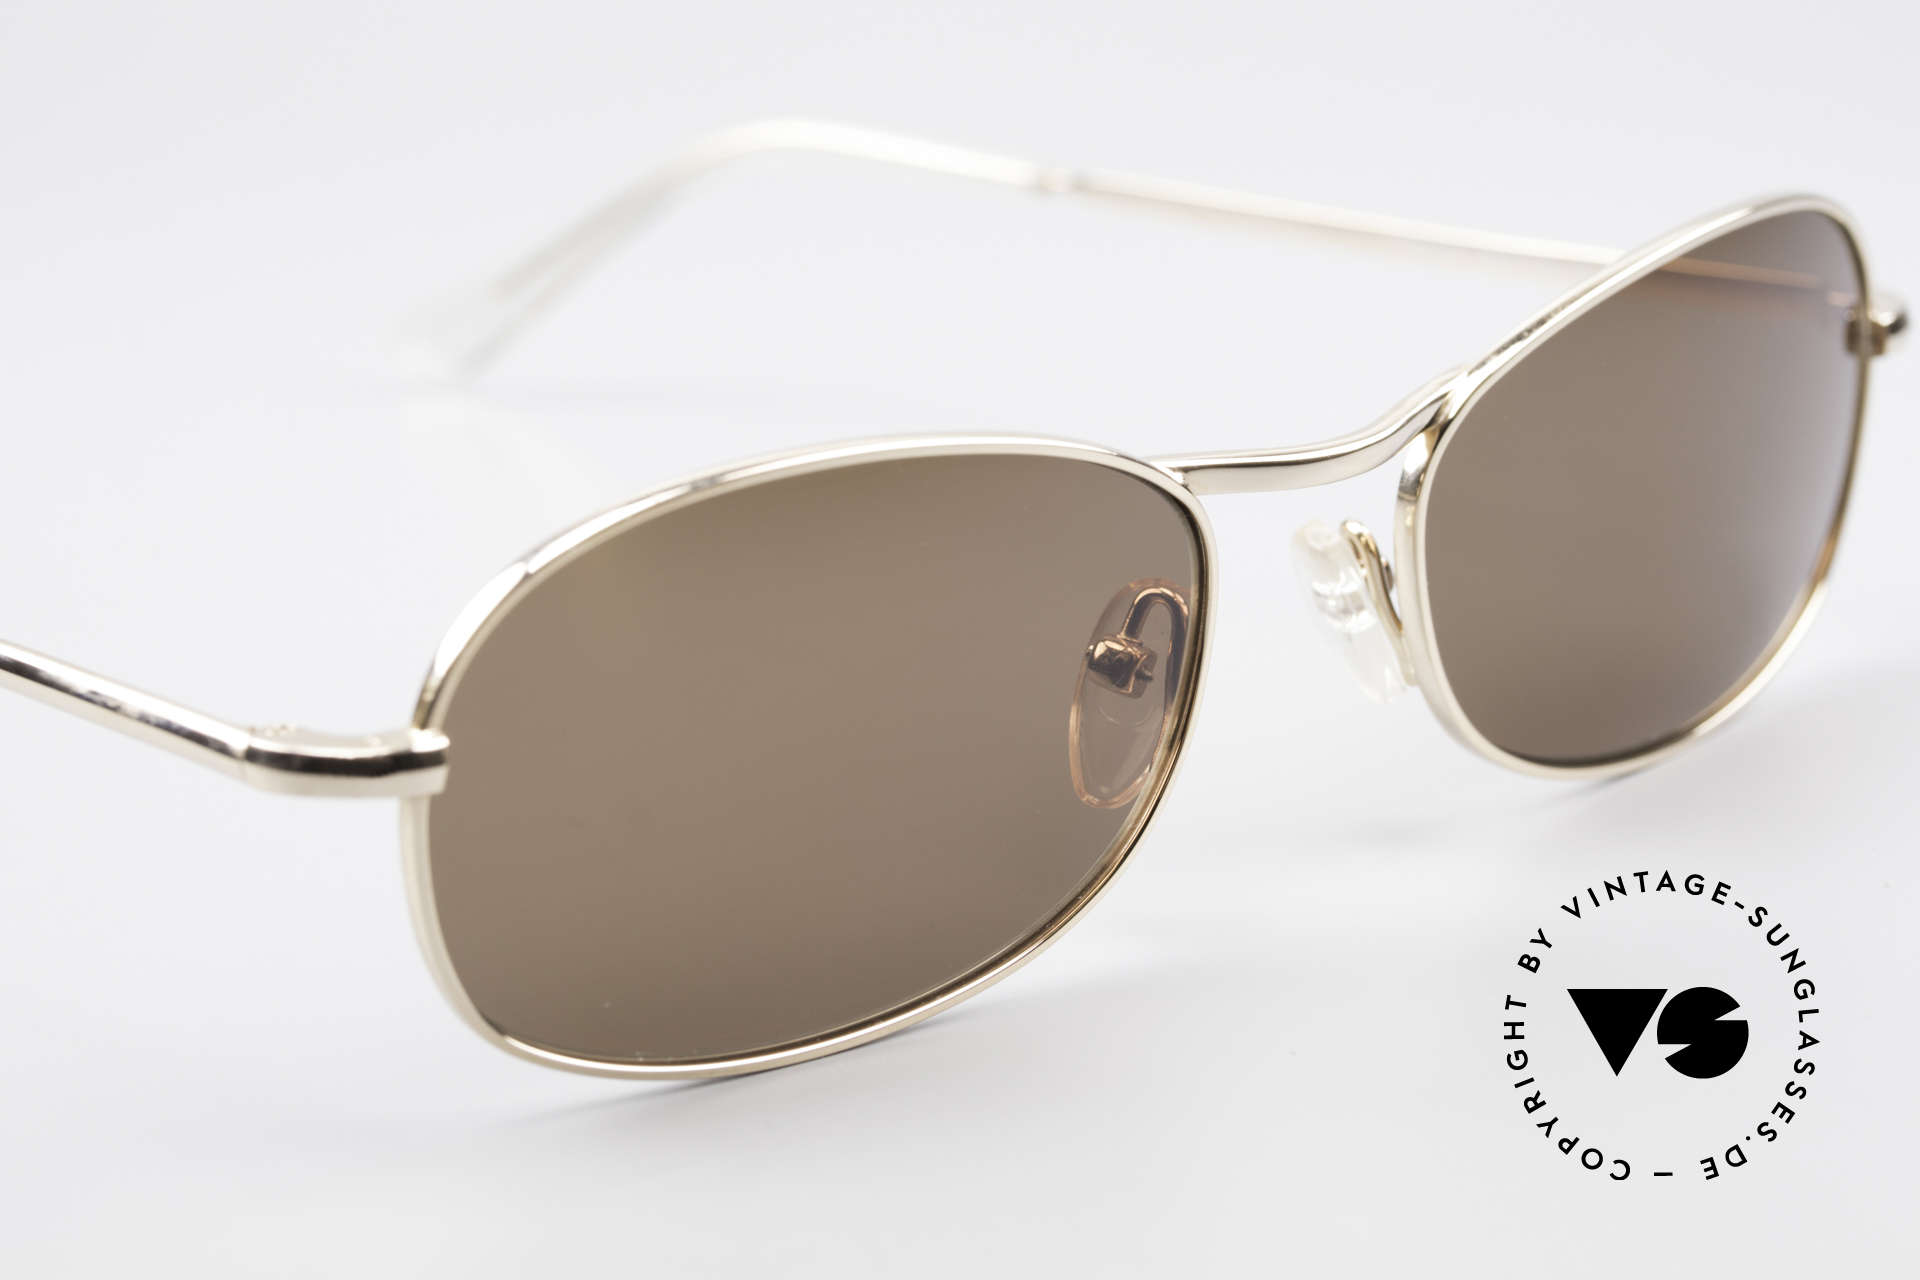 Helmut Lang SHL53A Minimalist Titanium Shades, never worn (like all our vintage HELMUT LANG shades), Made for Men